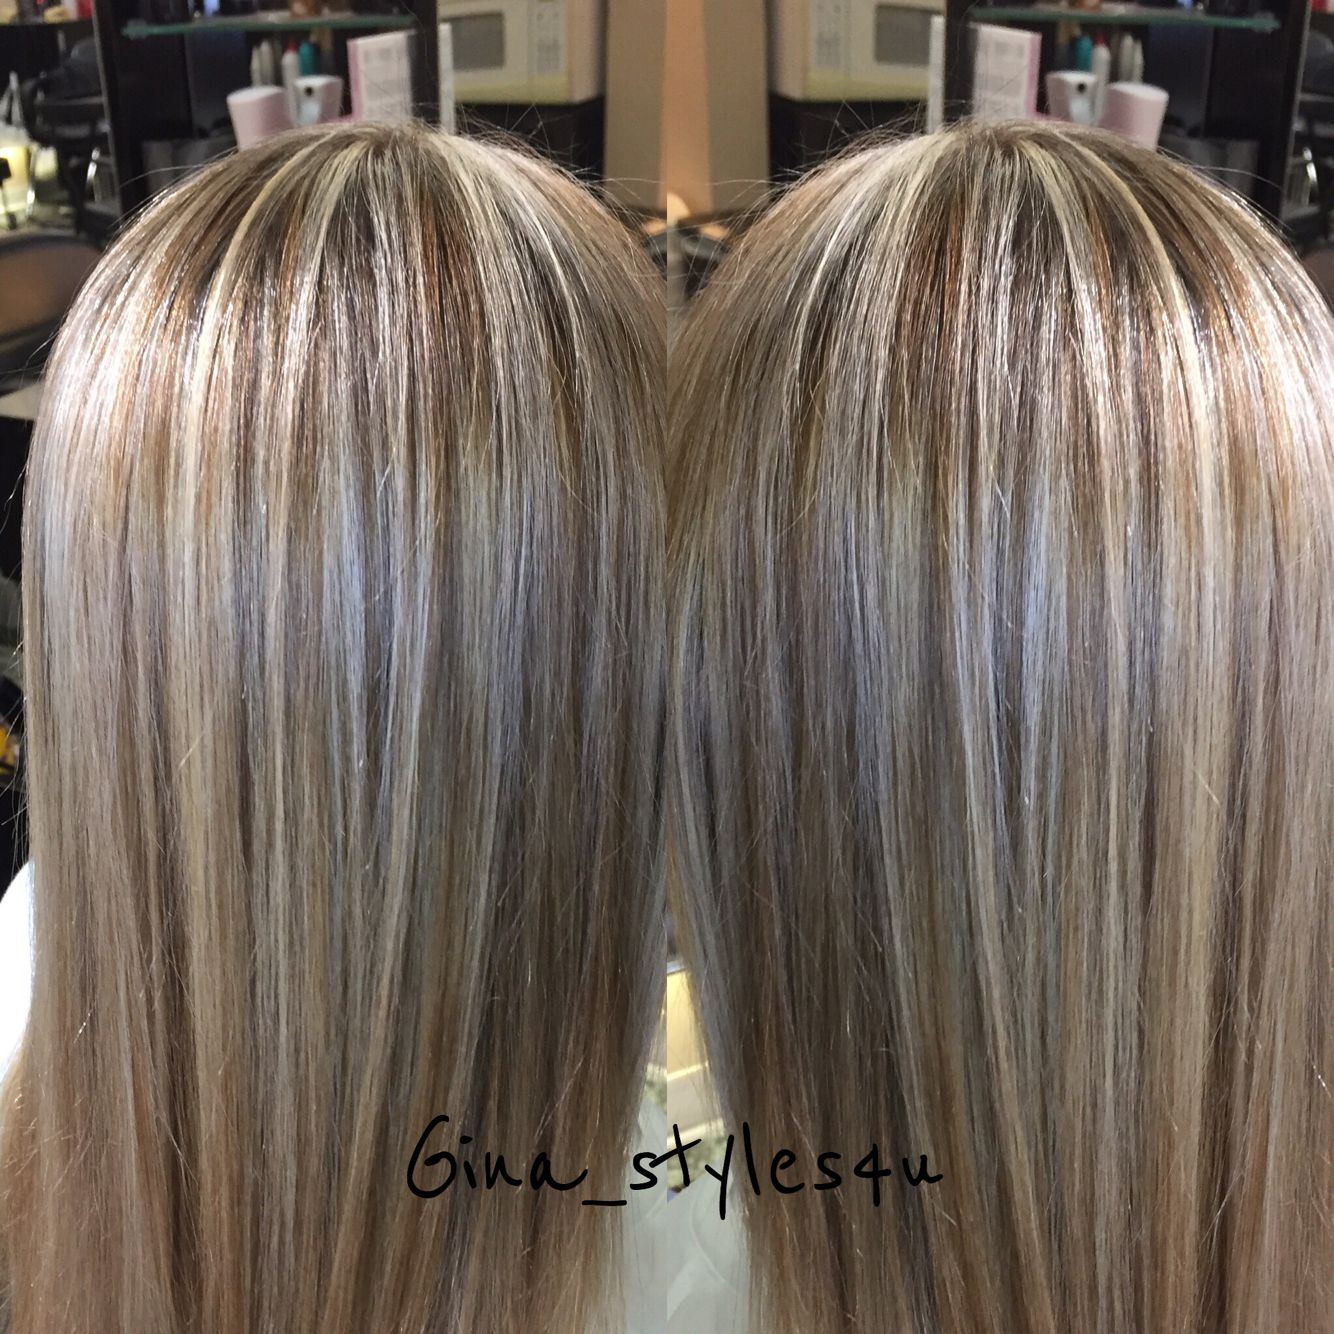 Blonde Highlights And Chocolate Golden Lowlights Soft Shineyhair